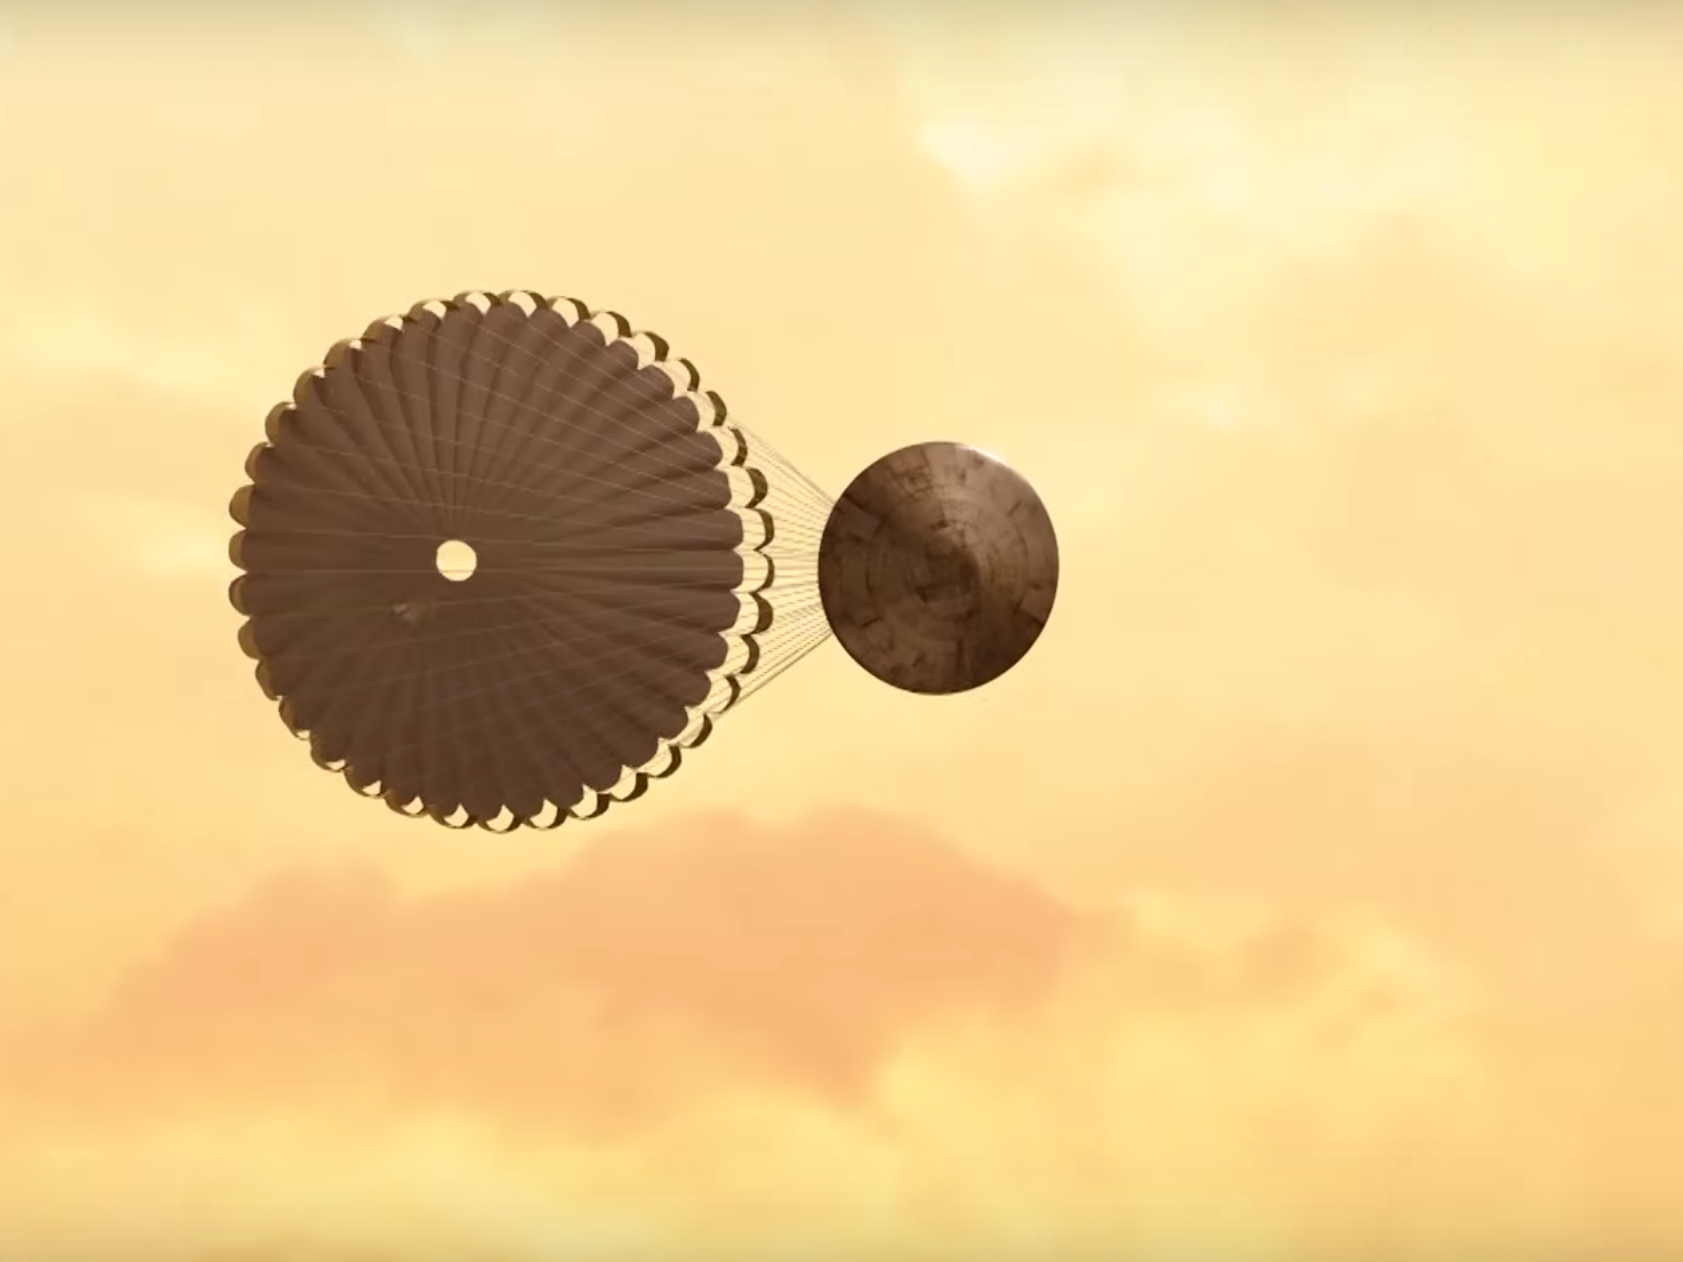 Just Weeks From Mars Landing, the ESA Shows Off Schiaparelli Model